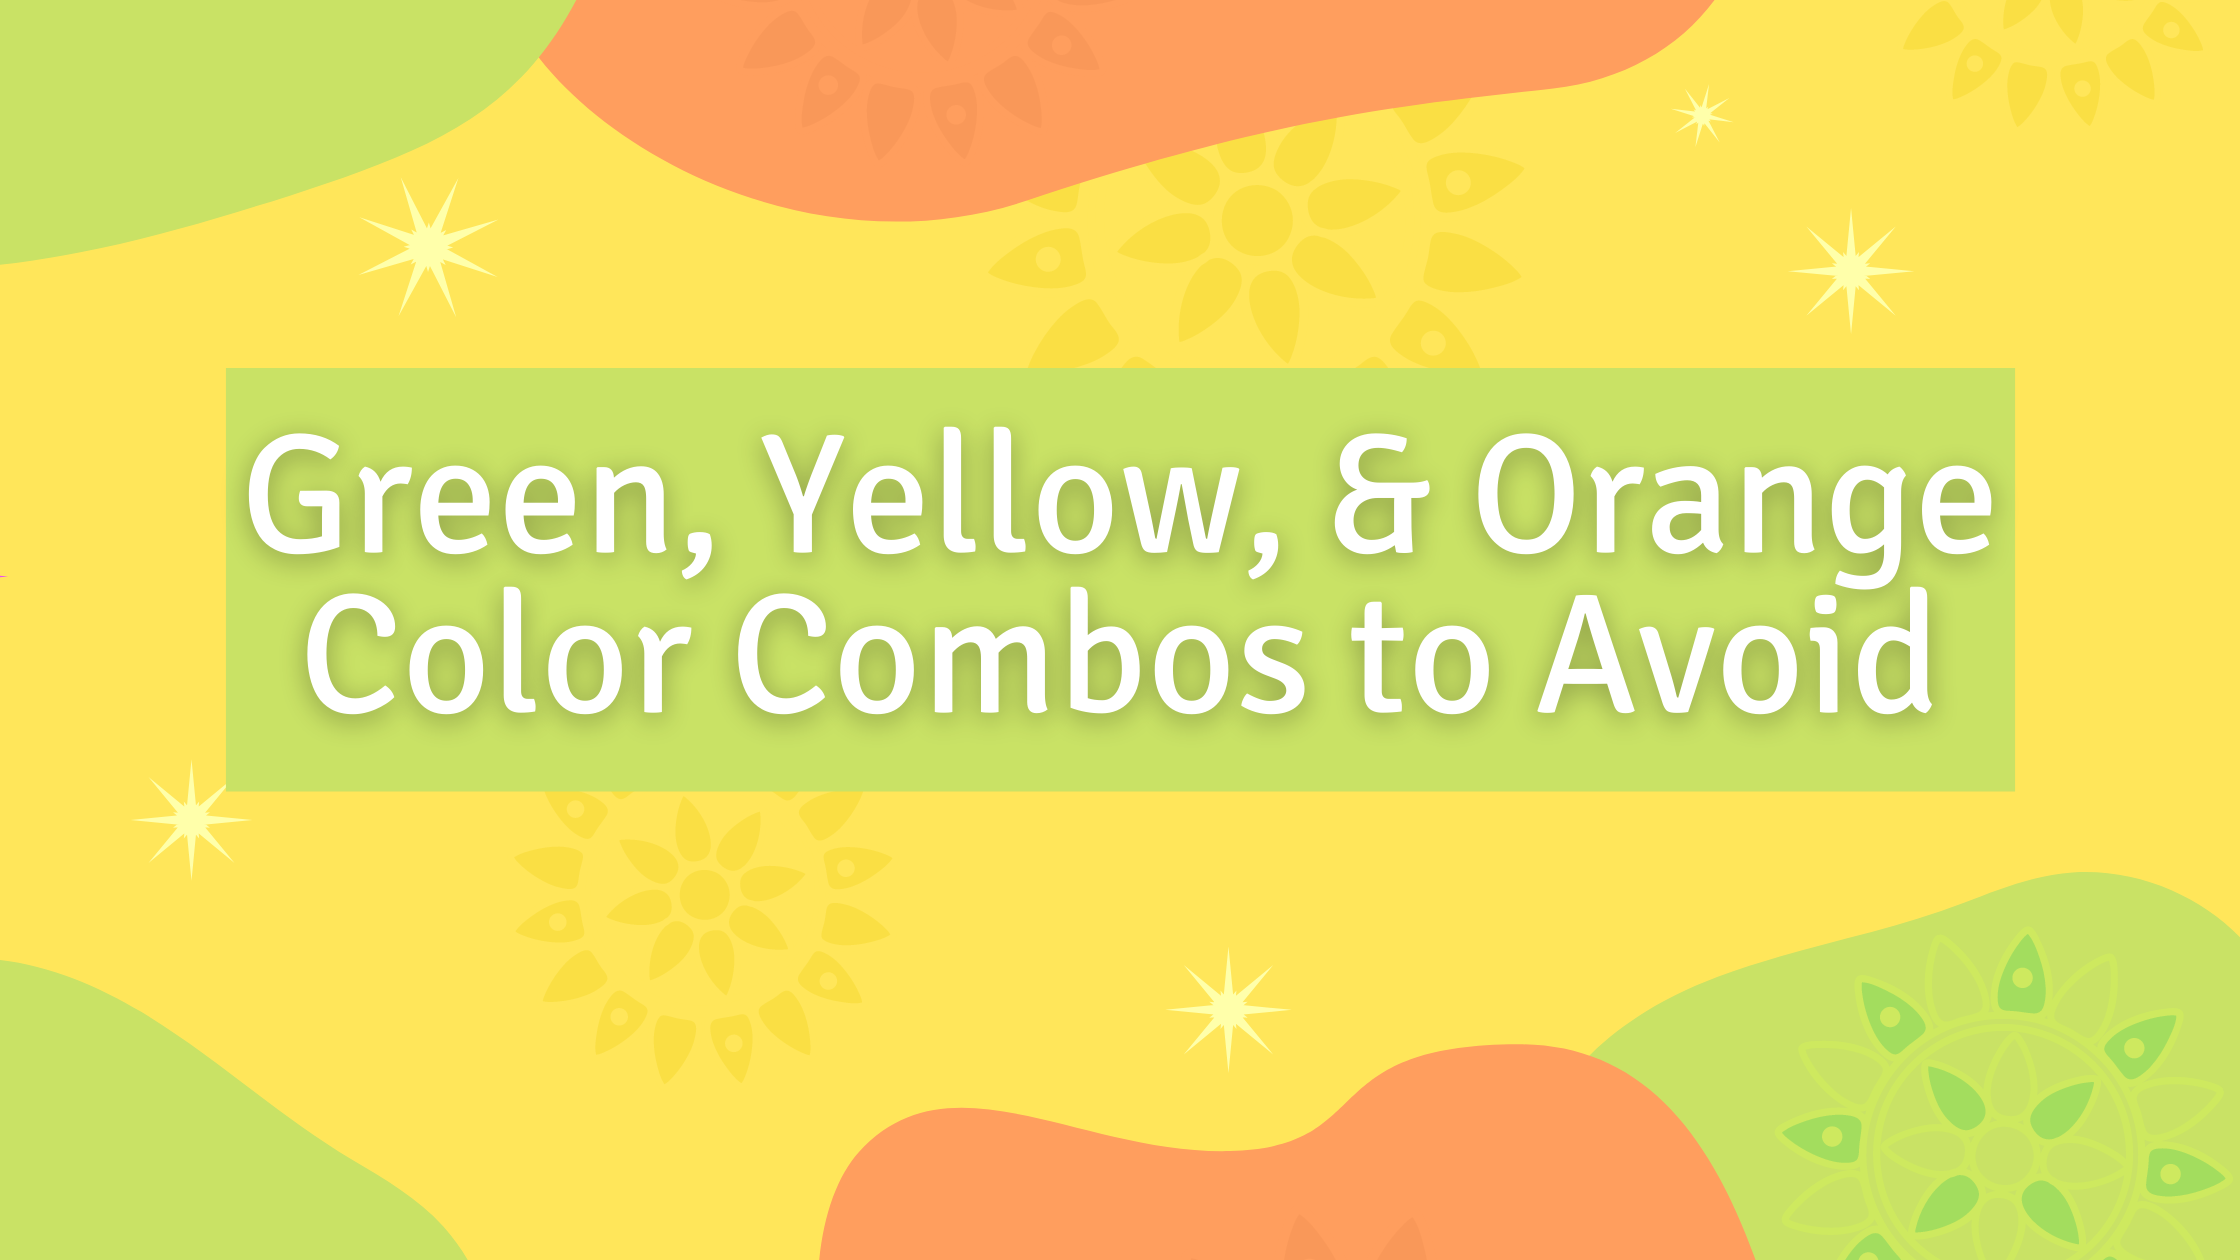 Green, Yellow, and Orange Color Combos to Avoid